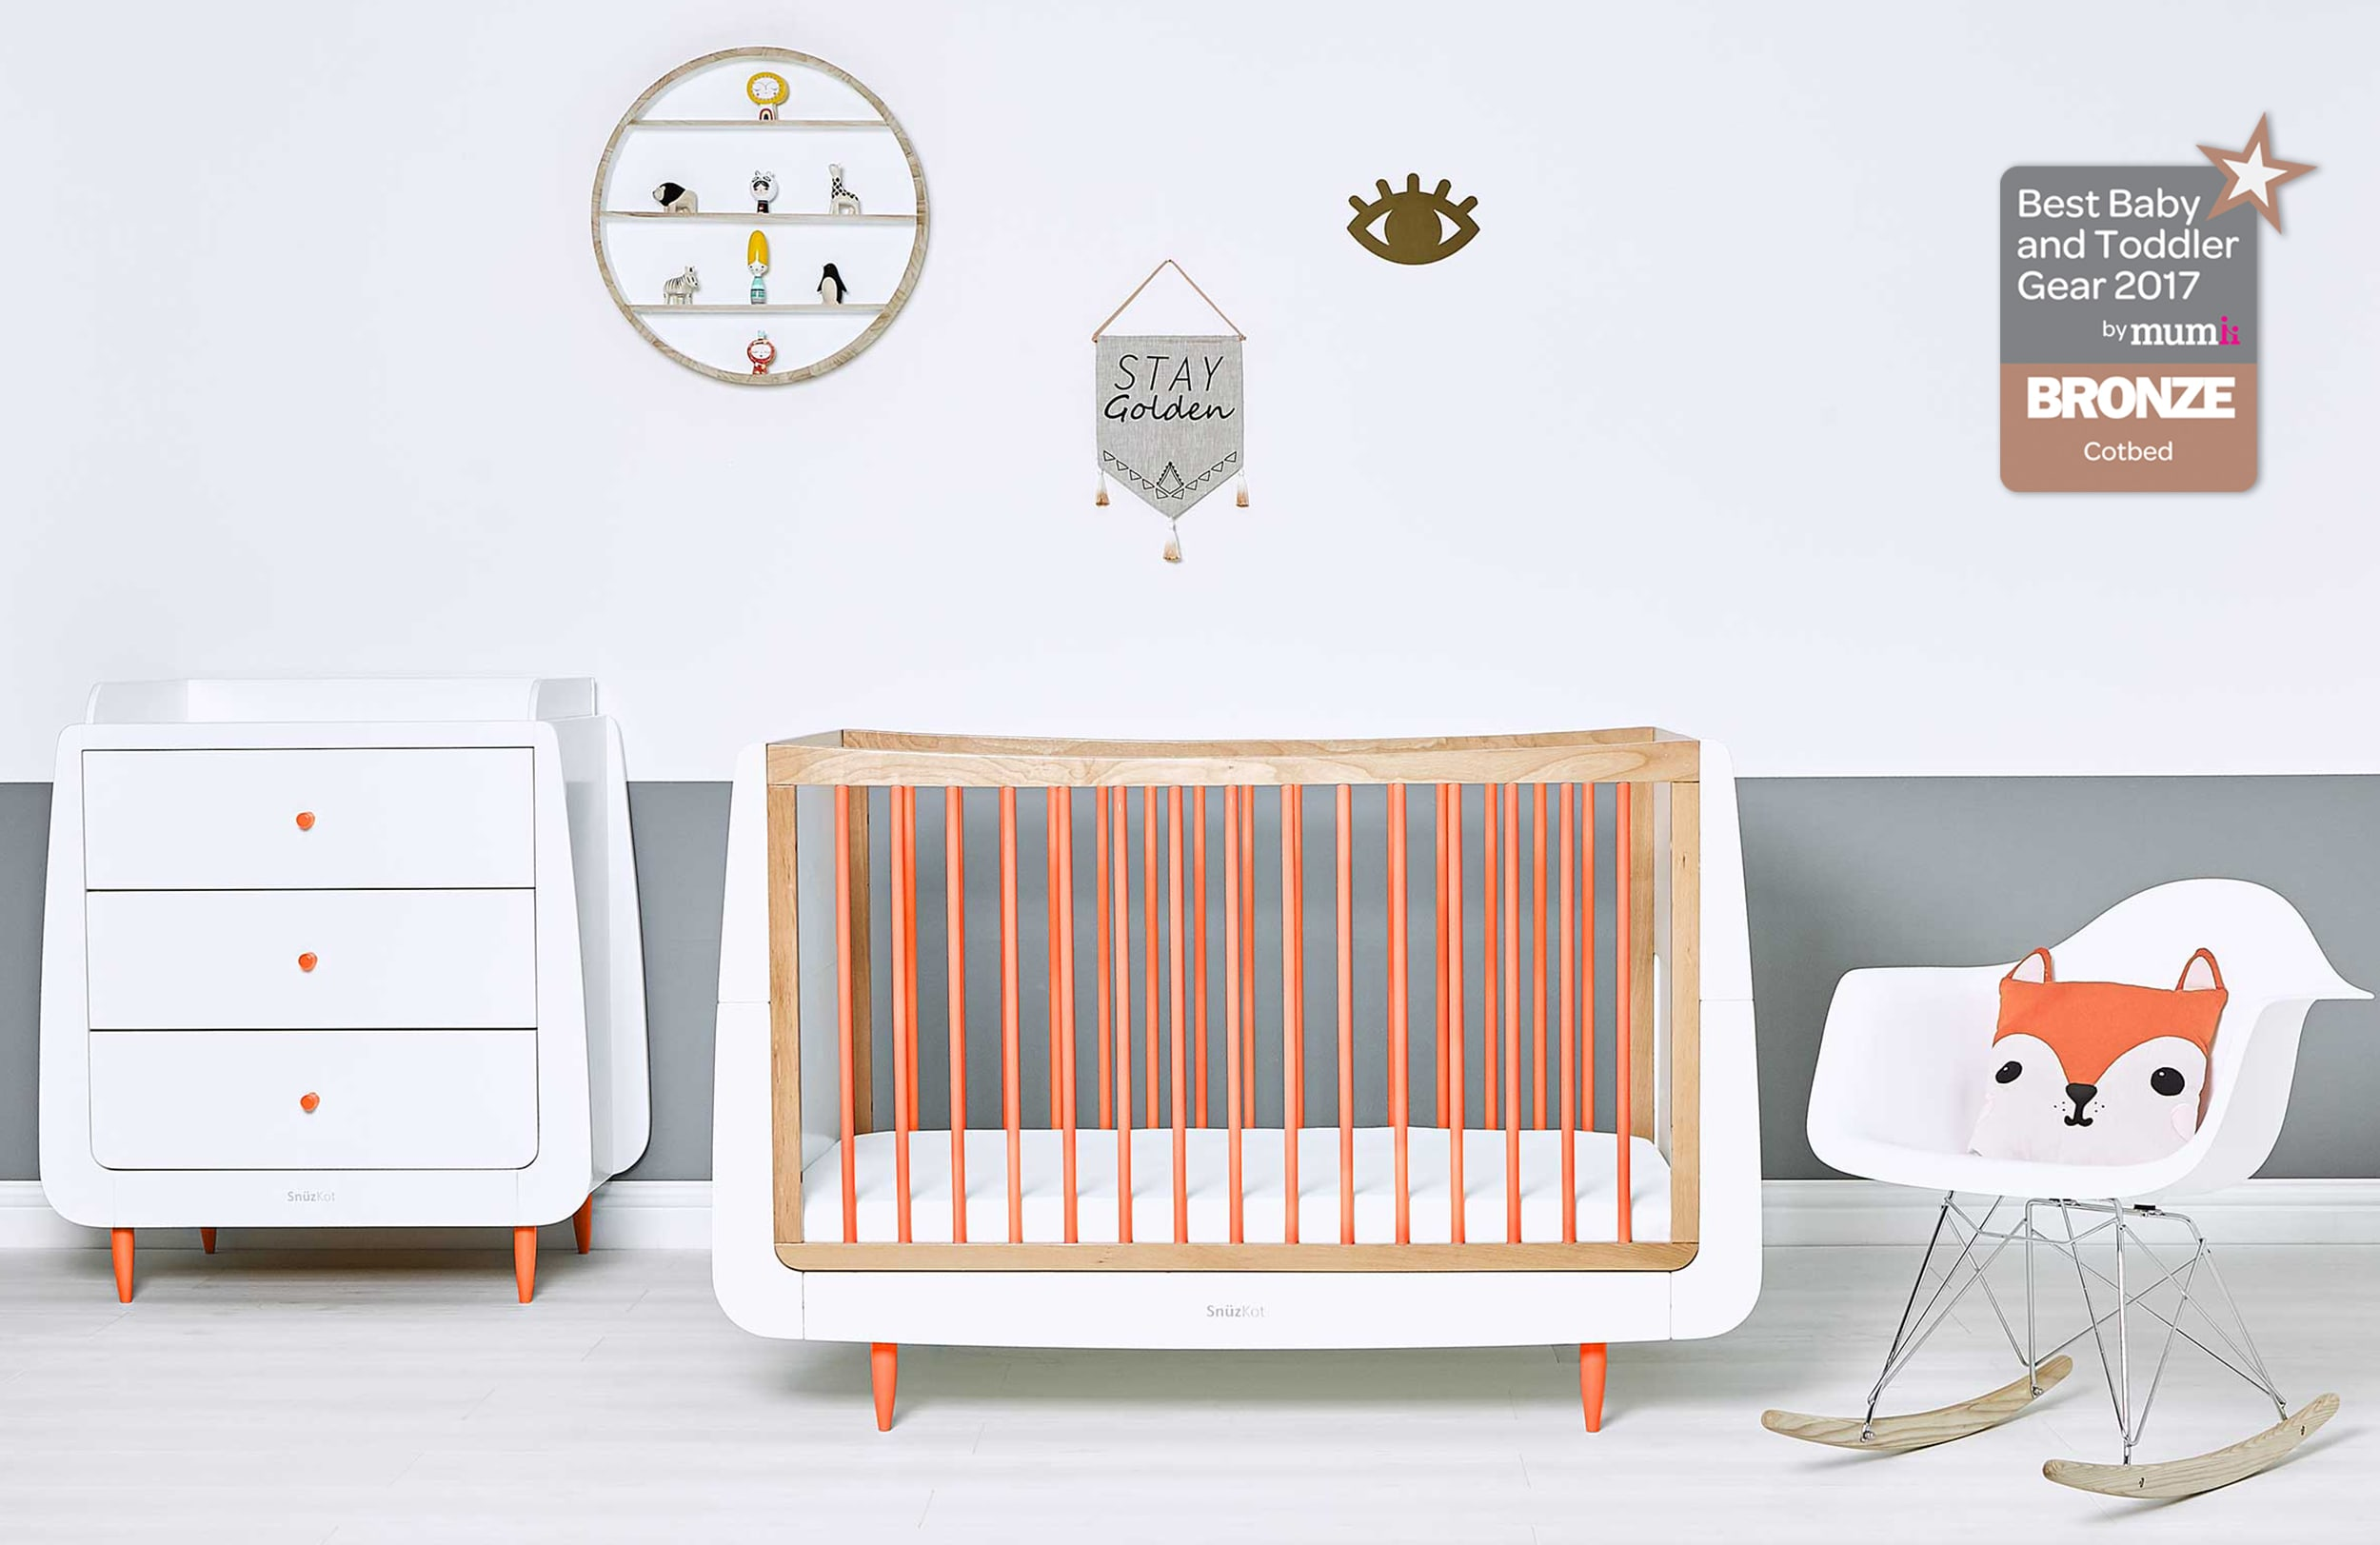 whitegrey tribeca room jpma baby by bed zone into grey in products white scene powered crib turns safety